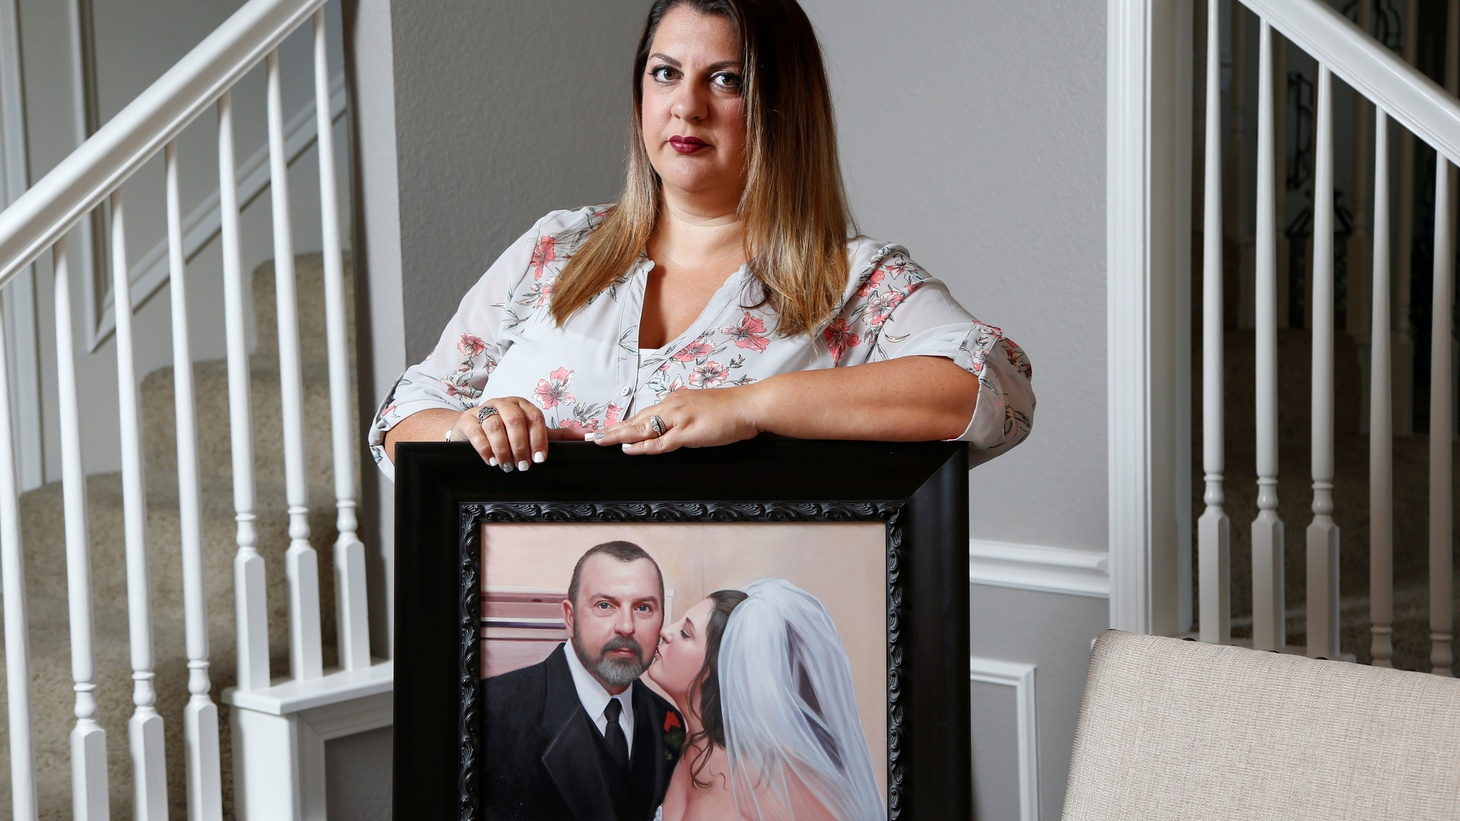 Farrah Fasold poses for a portrait with a painting of her late father Harold Dillard  at her home in Flower Mound, Texas, July 18, 2017  Photo by Brandon Wade/Reuters   The transplanting of organs from dead people to living ones is strictly regulated in every state. But the business in body parts for research is another matter.  Reuters  news…